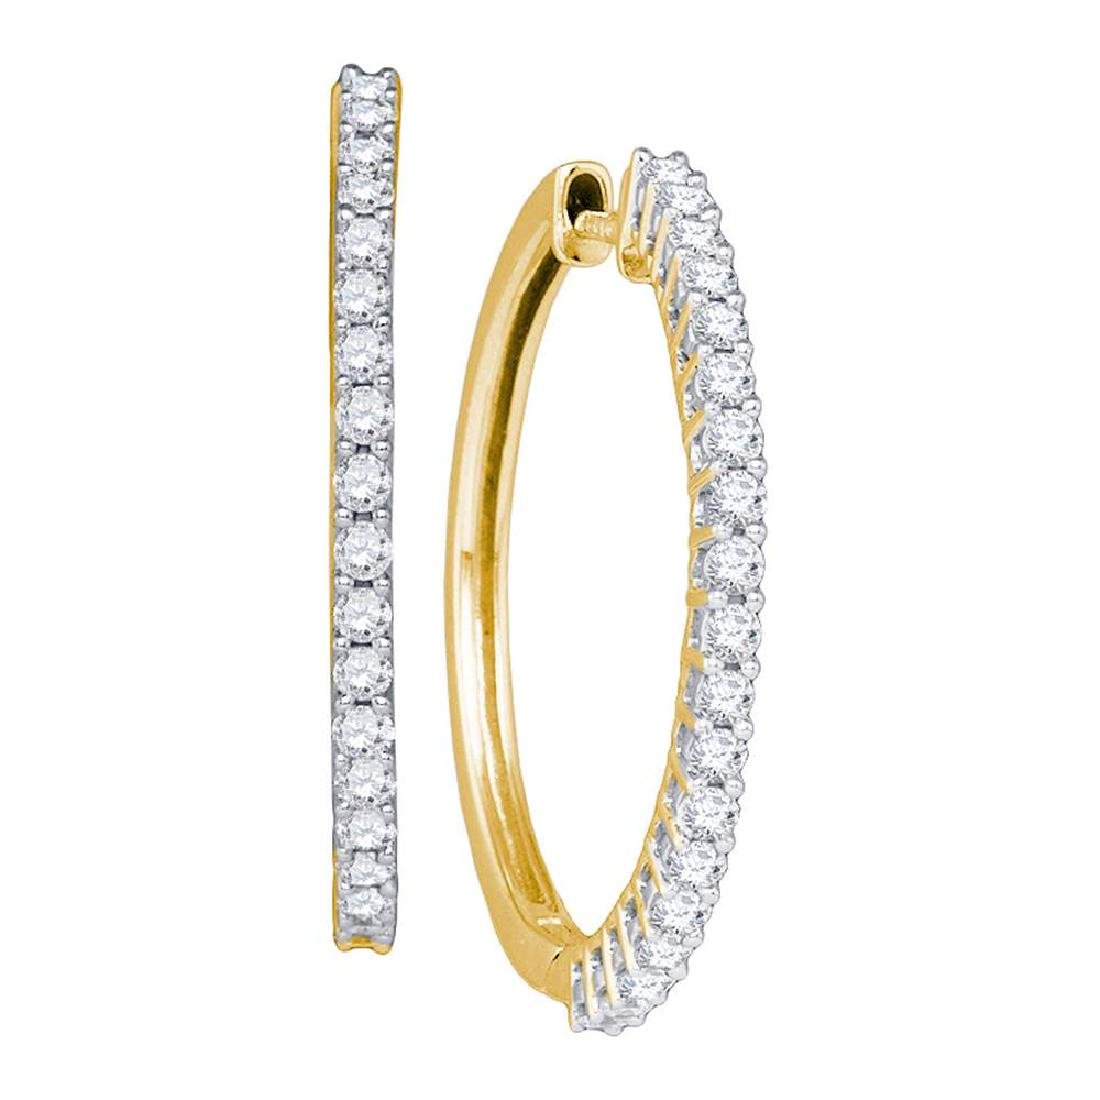 1.01 CTW Pave-set Diamond Slender Single Row Hoop